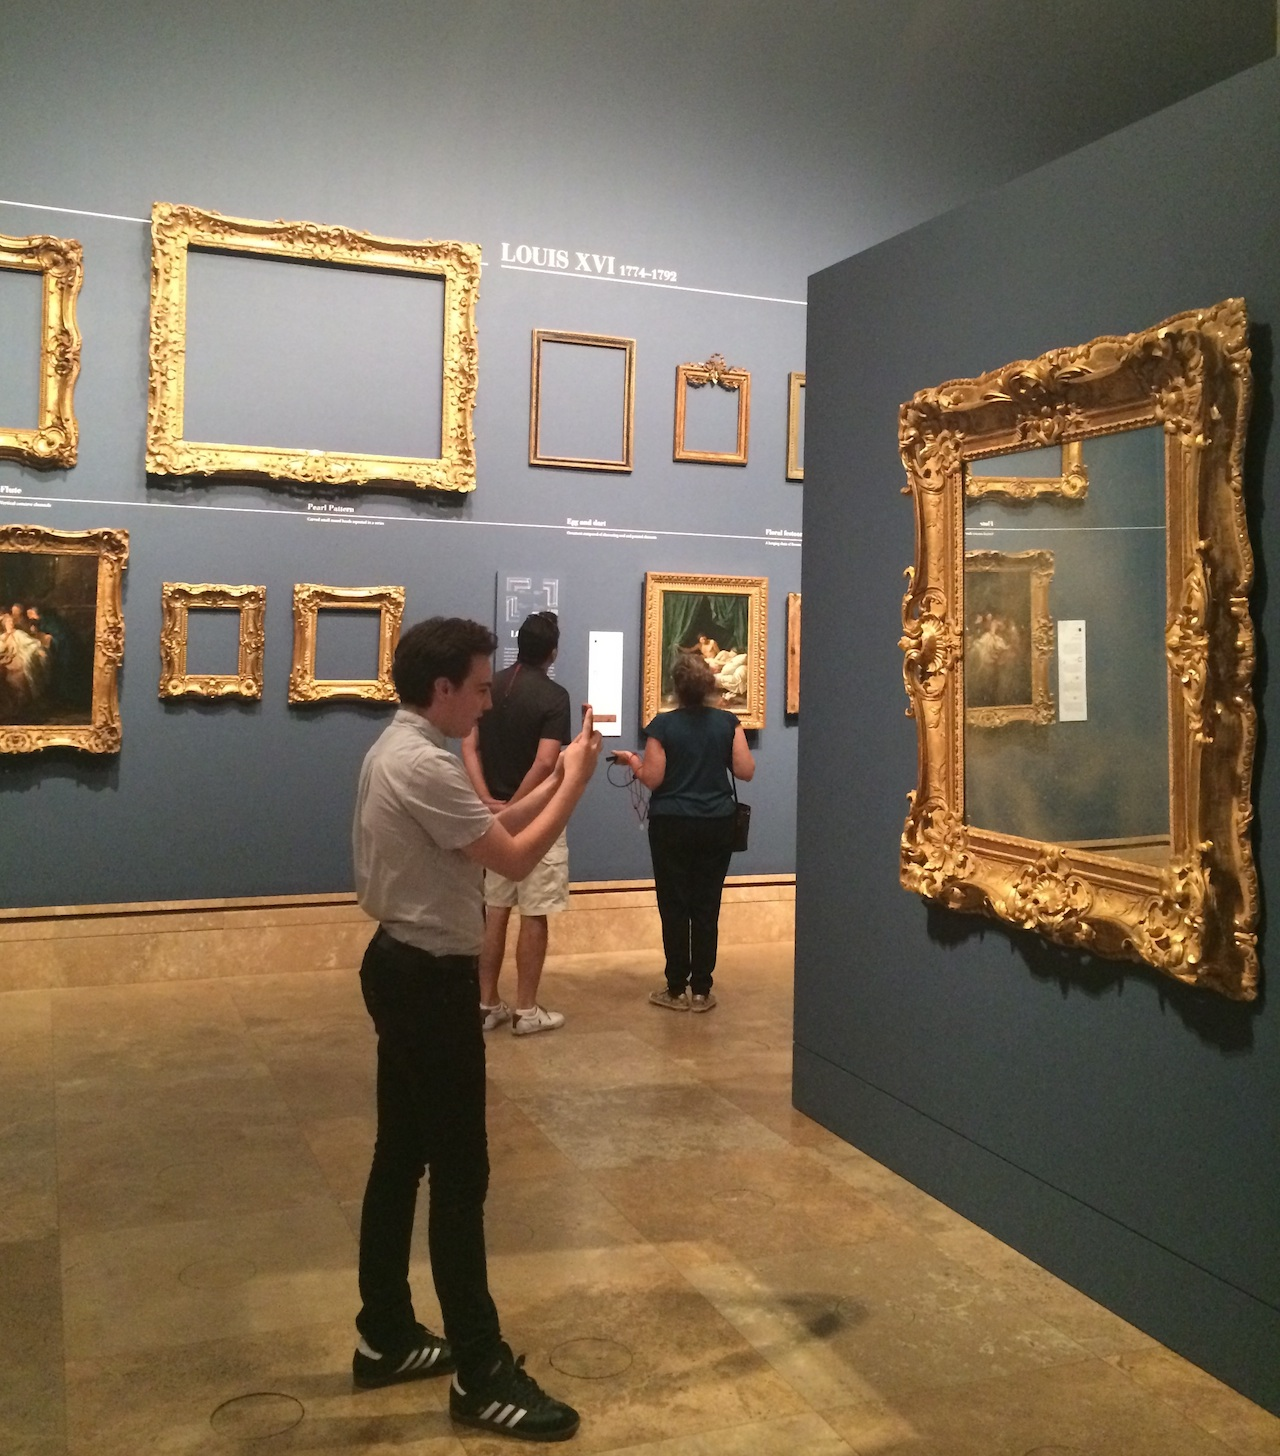 Tests Com Reviews >> A French History of Gold, Gilded, and Fancy Frames